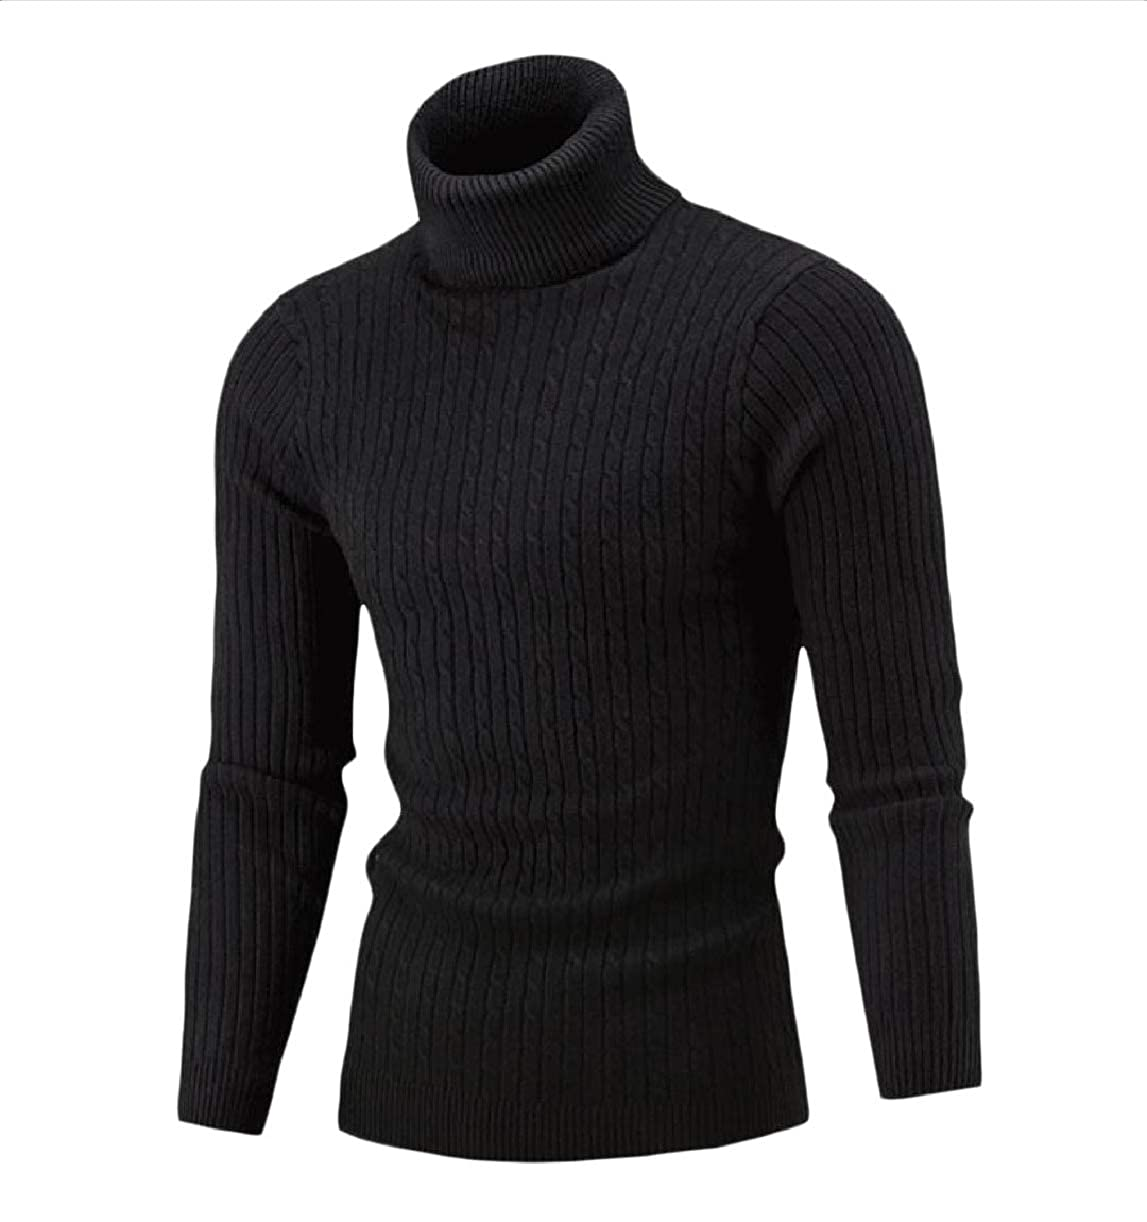 Abetteric Mens Warm Fall Winter Knit Regular Slim Fitted Sweater Pullover